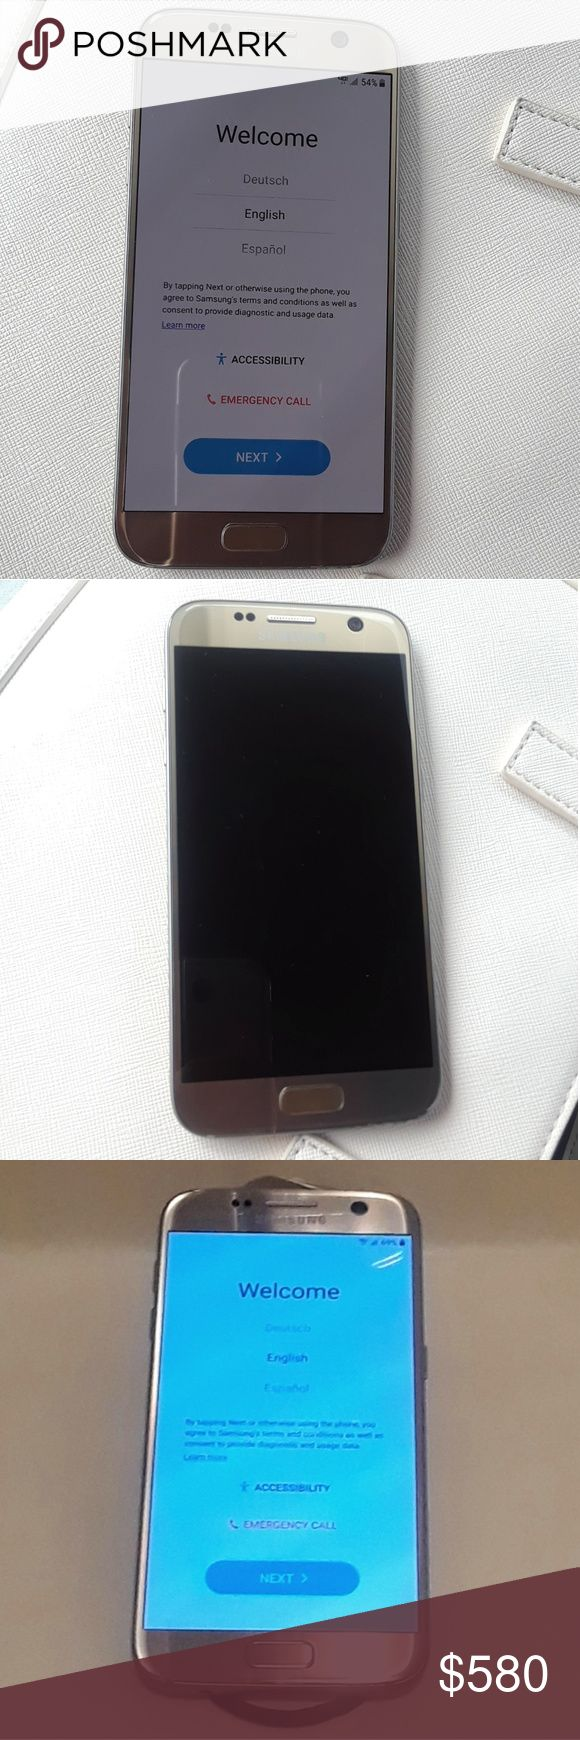 Samsung Galaxy S7 SM-G930 - 32GB - Gold Platinum The Galaxy S7 comes in 32GB. The phone is in excellent conditions & works perfectly. No scratches, no cracks. 100% Water Resistant. Almost Brand New! Samsung Galaxy S7 Other